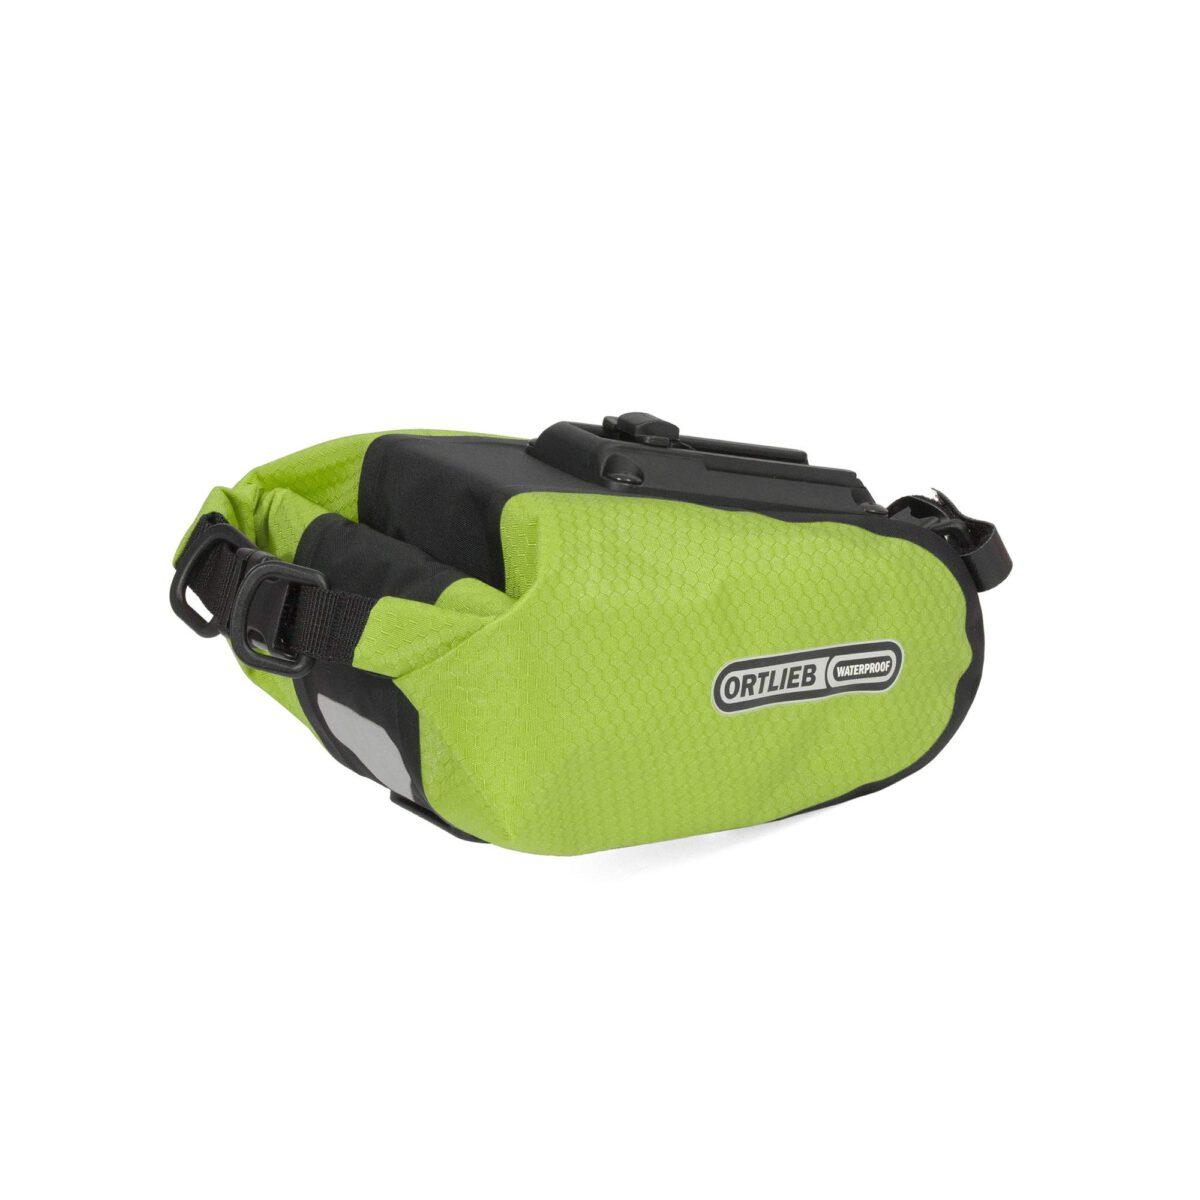 237512001_d_saddlebag_ortlieb